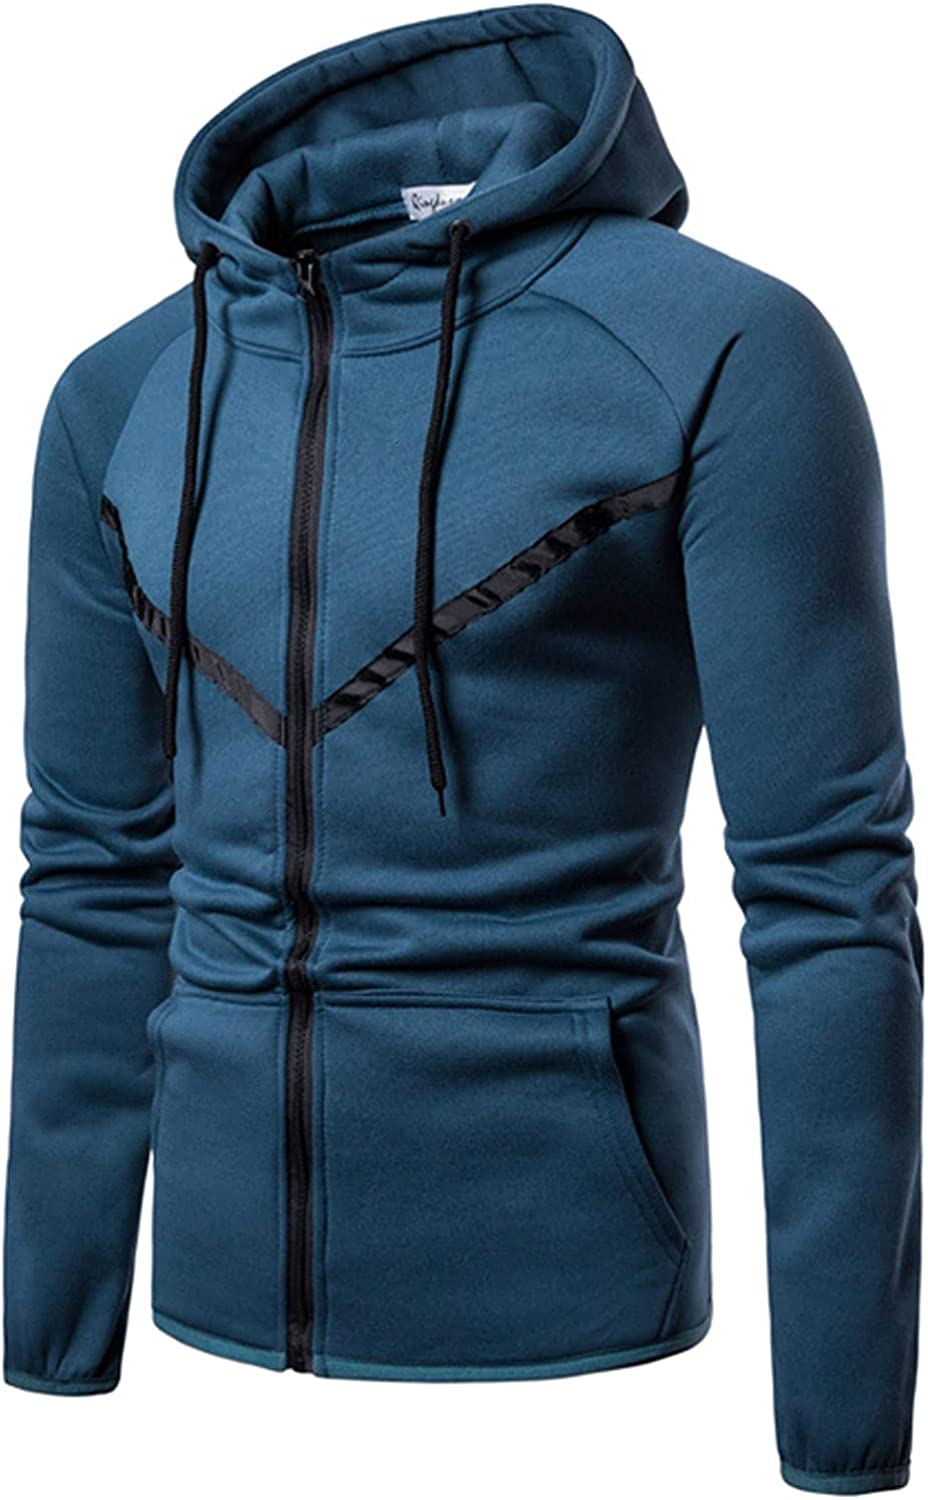 HONGJ Hoodies for Mens, Zipper Color Block Hooded Sweatshirts Men's Fall Slim Fit Workout Fitness Sports Casual Jackets